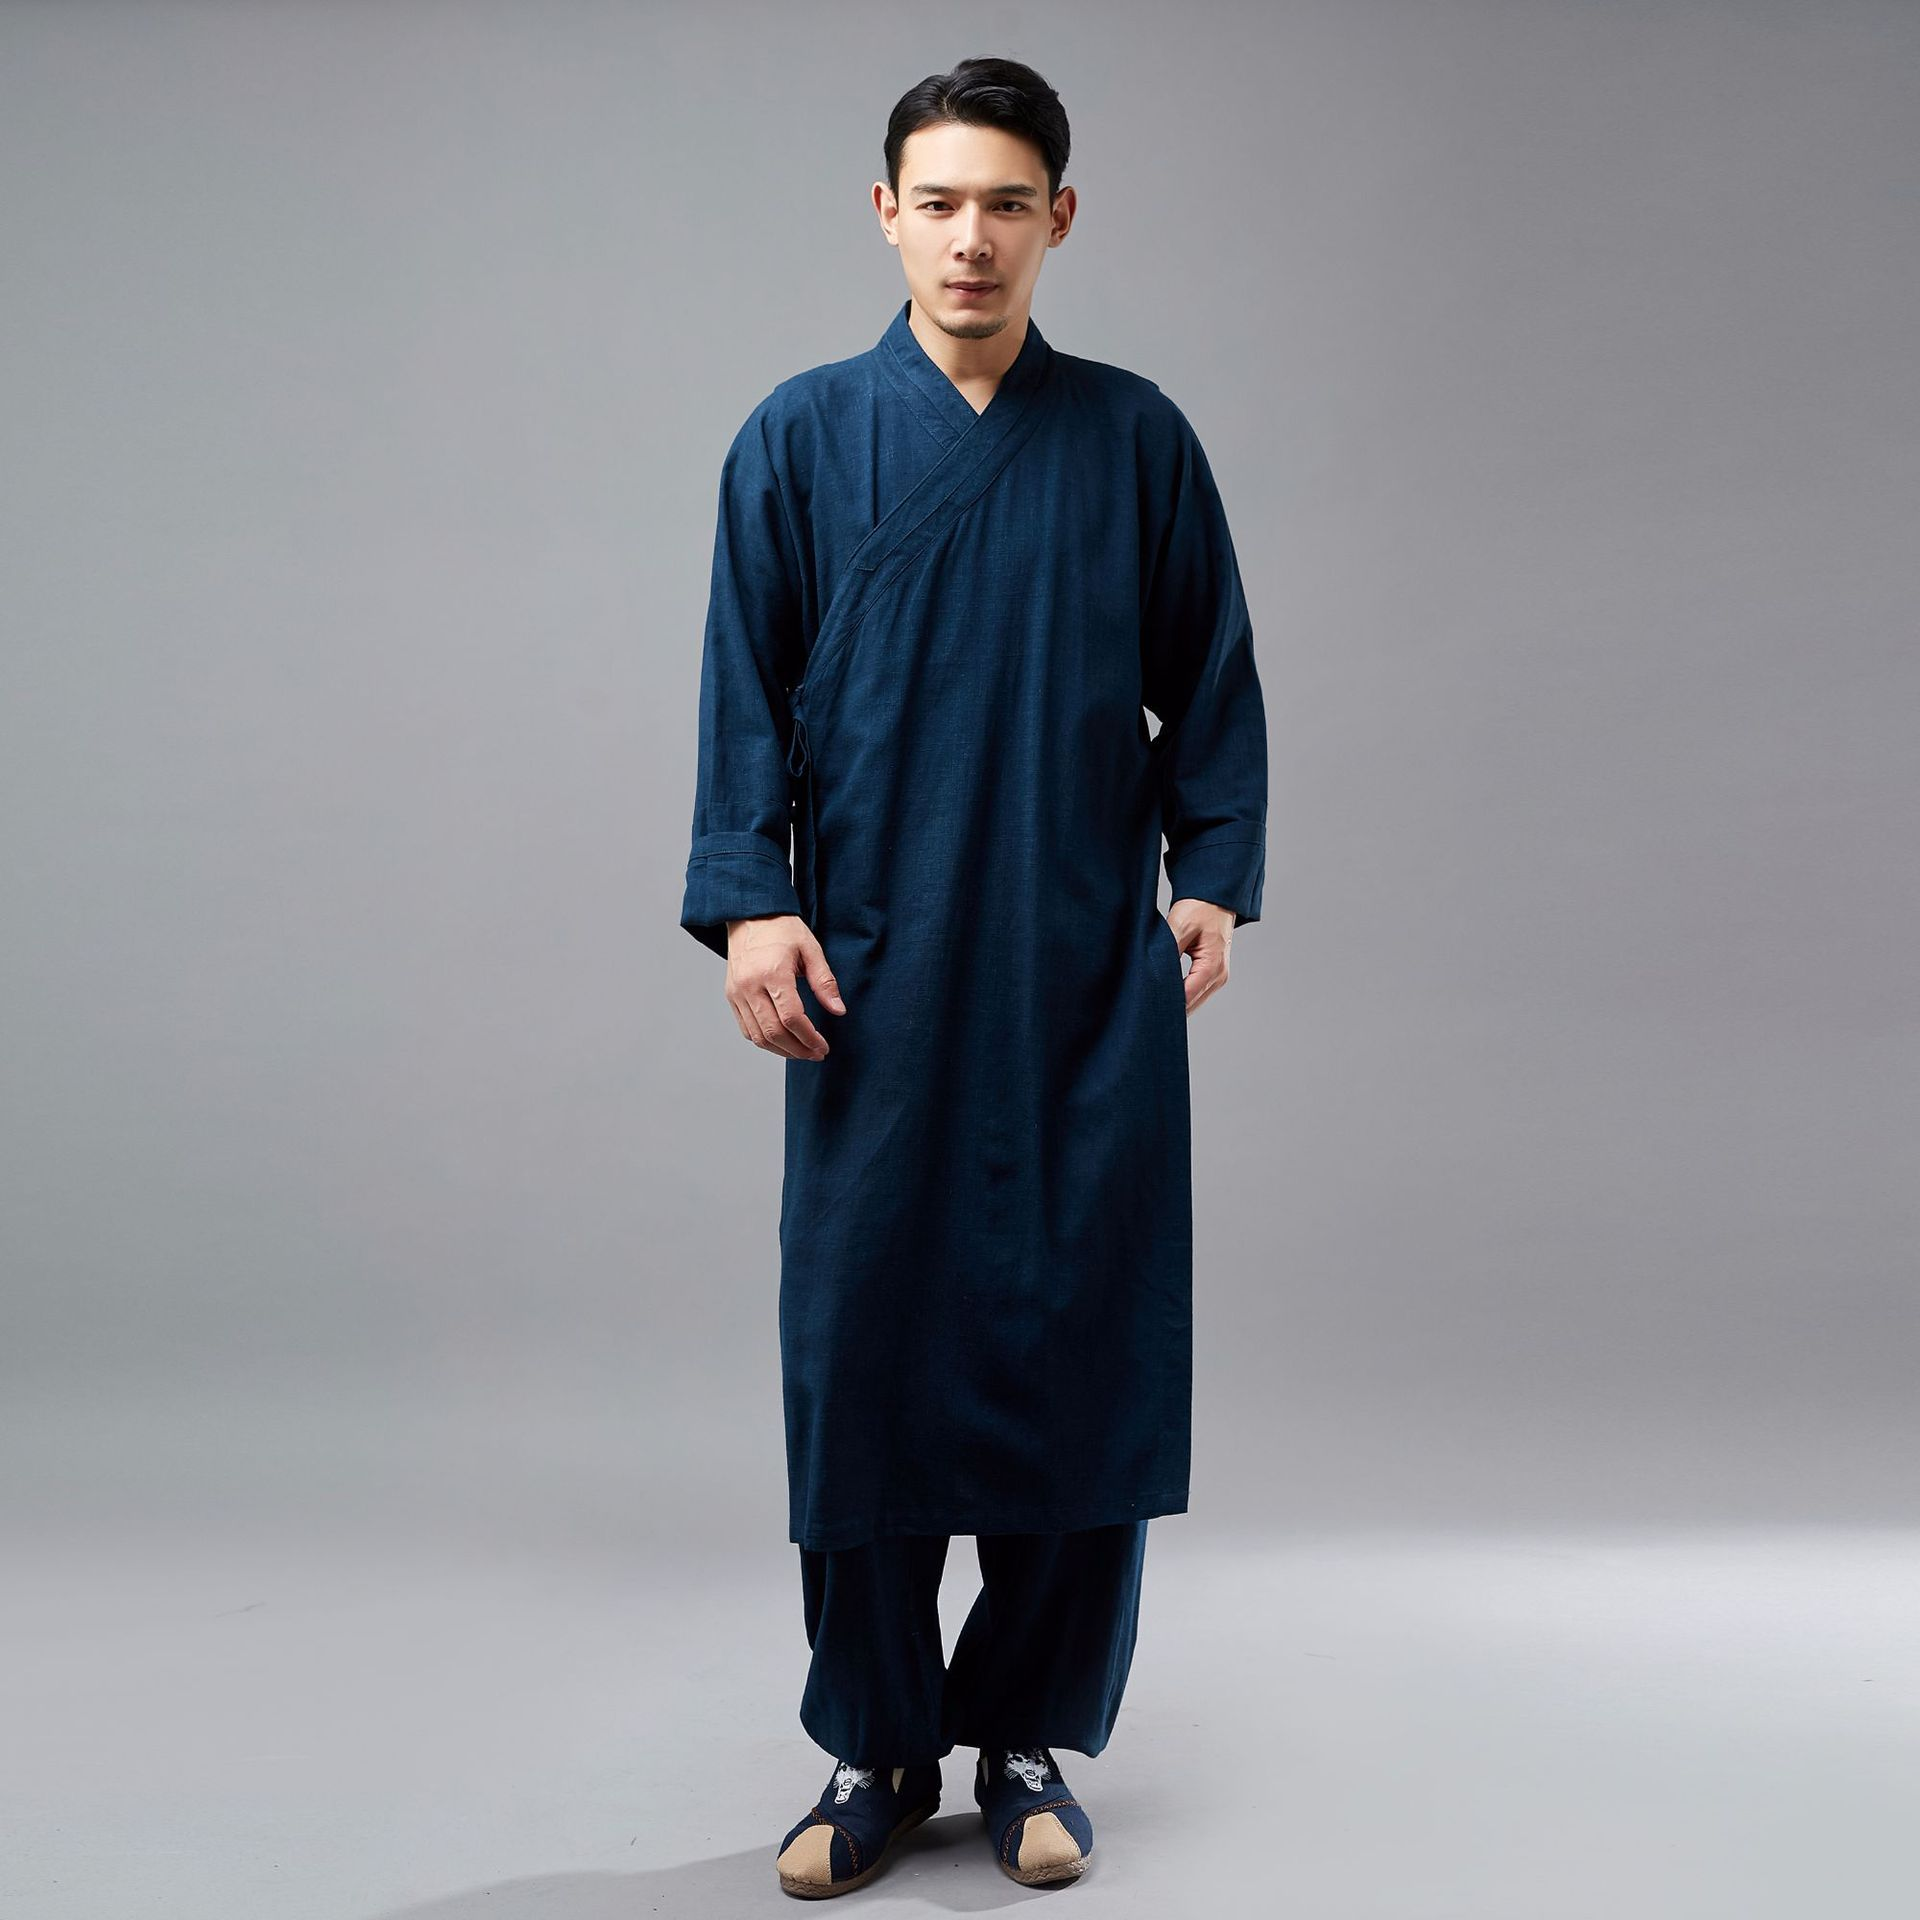 Traditional chinese clothing for men new style Linen vintage robe pubilc of China buddhist clothing Chinoiserie zen clothing Одежда